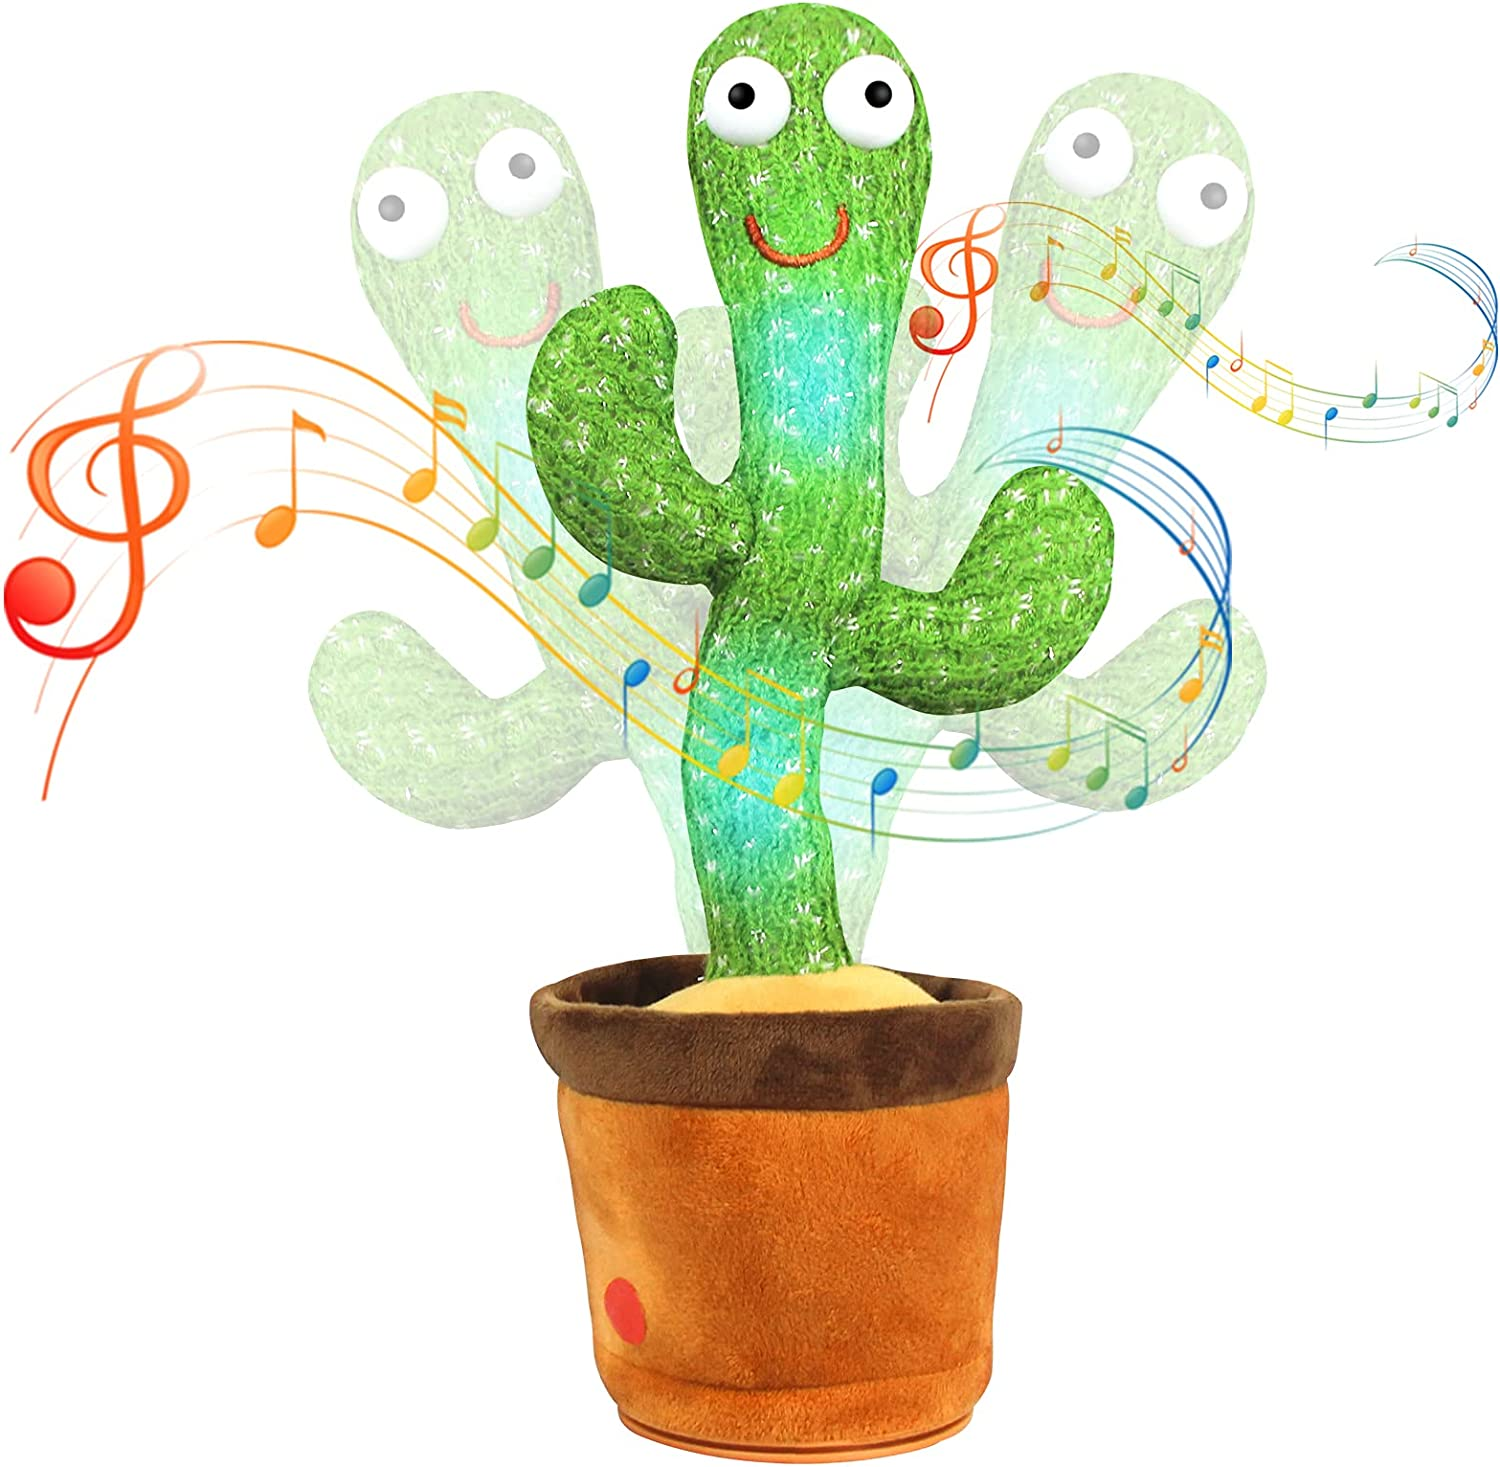 Buy Dancing Cactus Toys for Baby, Talking Cactus Toy, Singing Cactus Toy  with Lighting, Electric Recording Cactus Plush Toy for Home Decoration and  Baby Playing, Cactus for Your Baby Including 60 Music